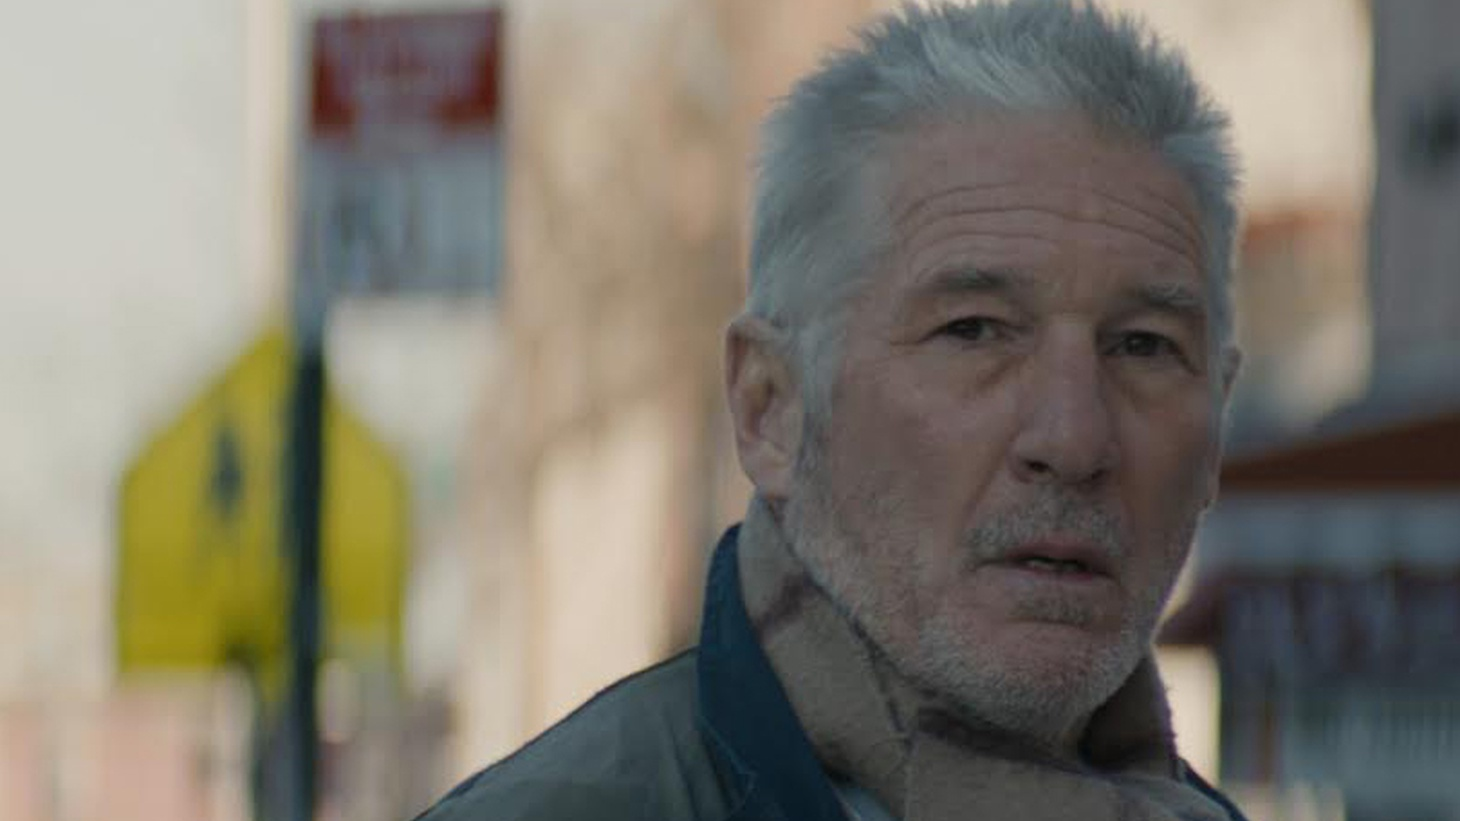 WEB EXCLUSIVE: Actor Richard Gere and director Oren Moverman discuss the experiential approach taken while highlighting homelessness in their new film Time Out of Mind.